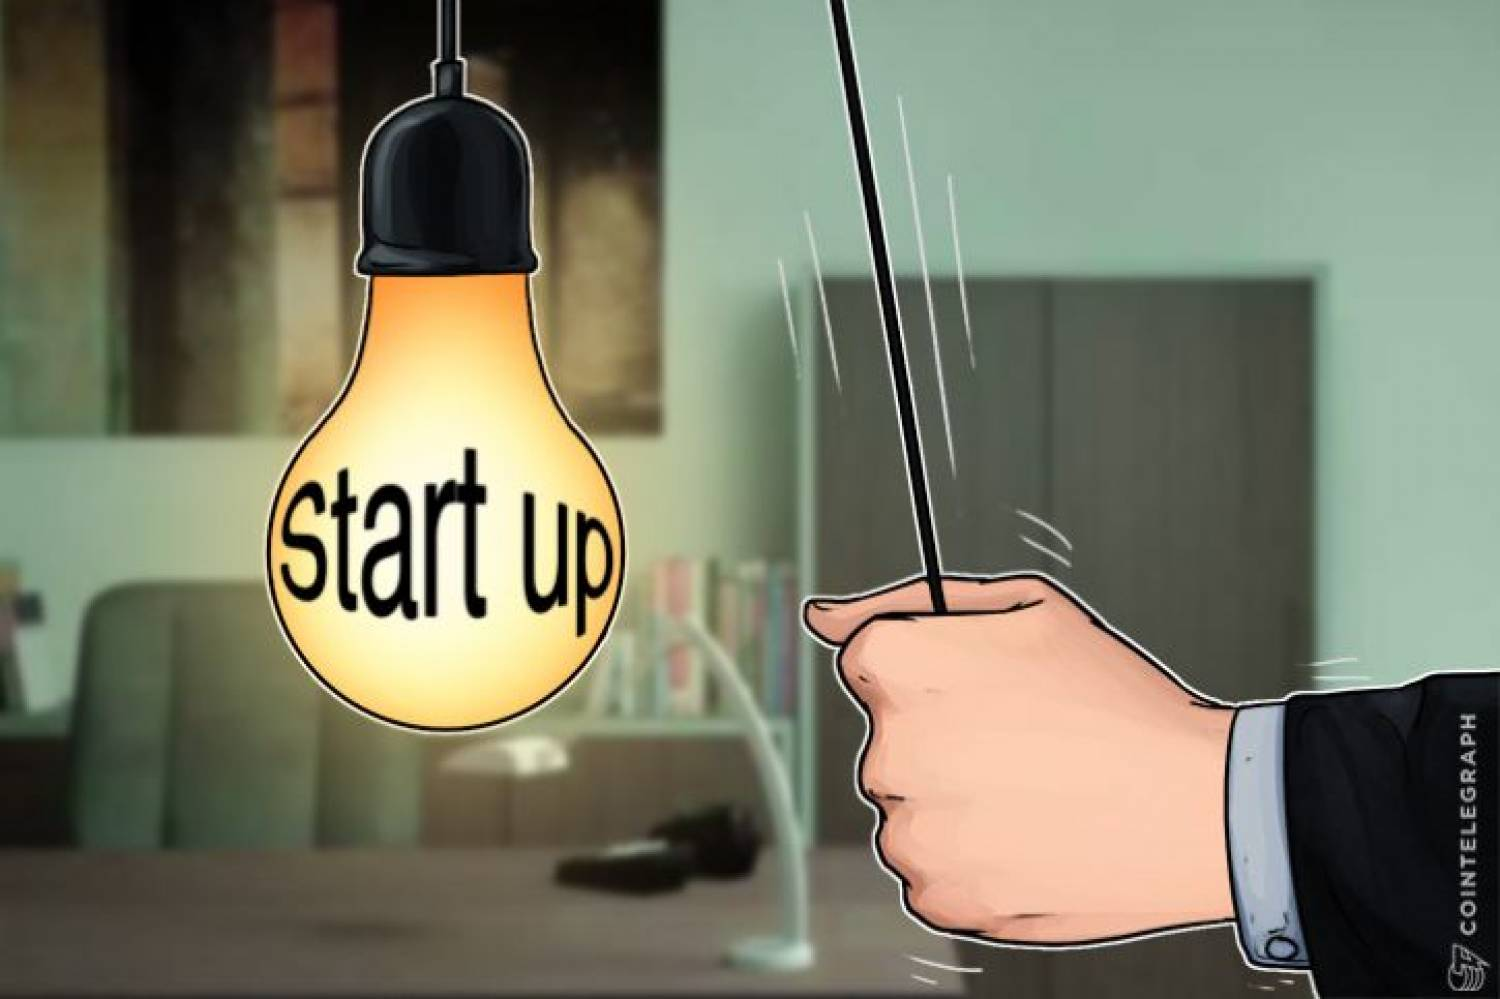 Startup as a lamp